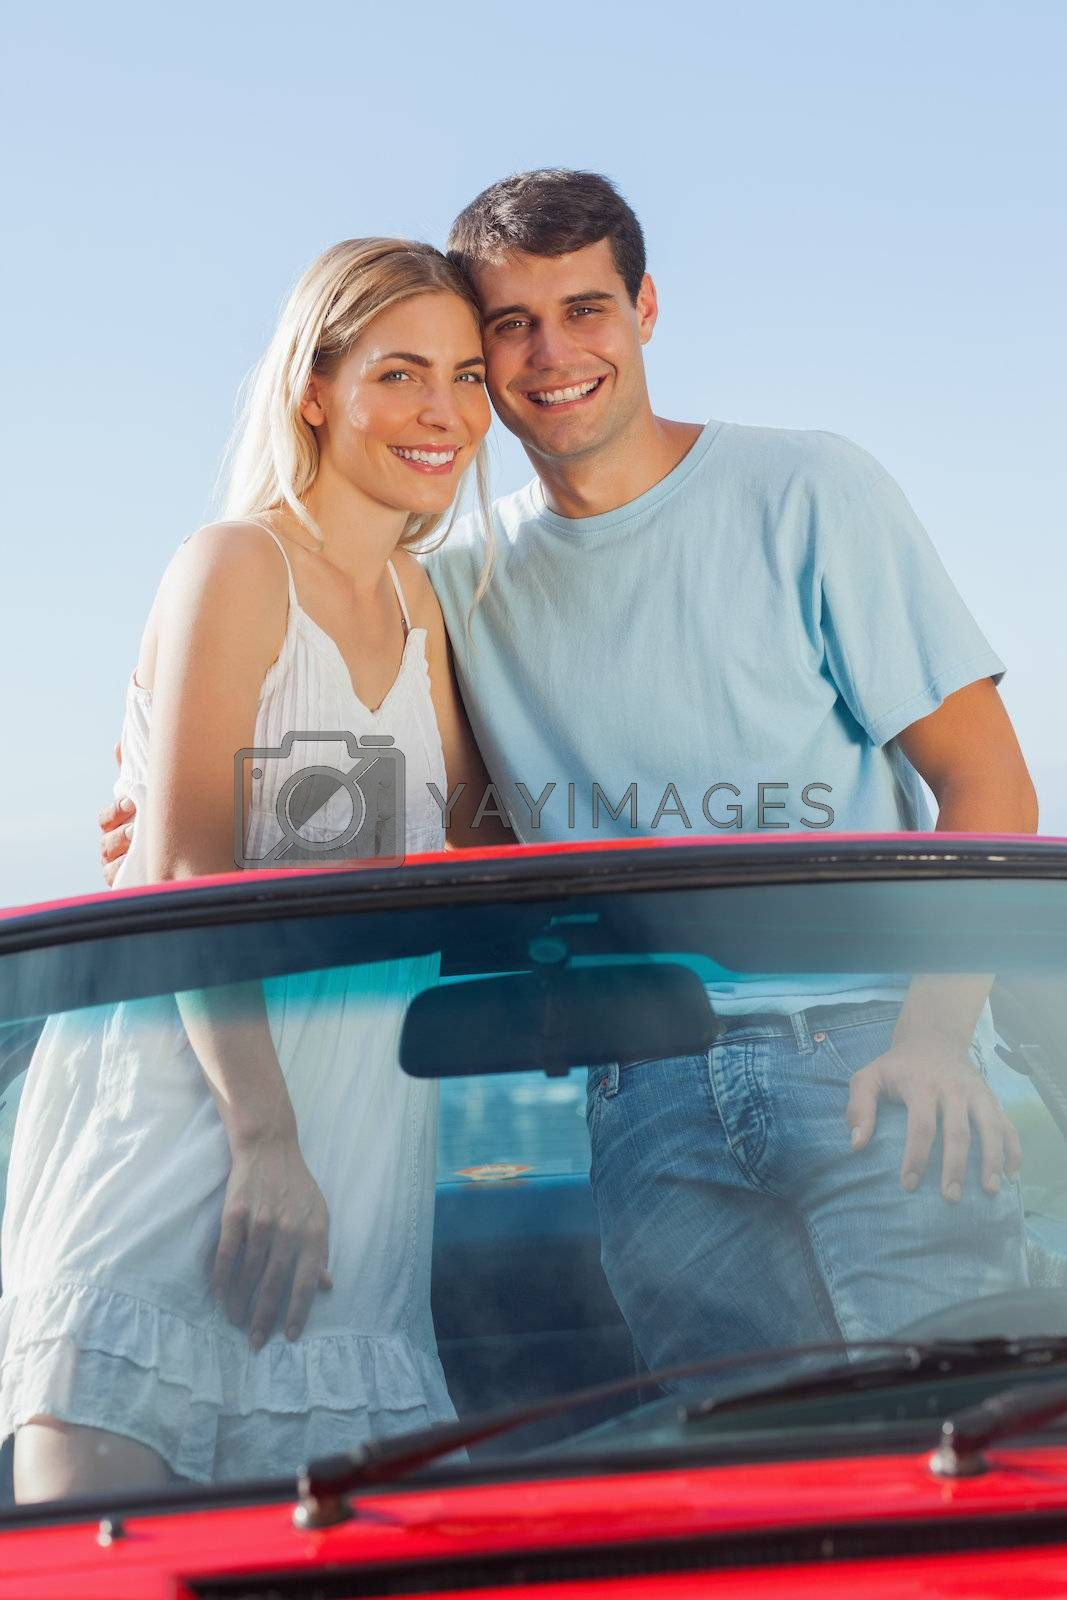 Smiling couple standing in red cabriolet posing by Wavebreakmedia